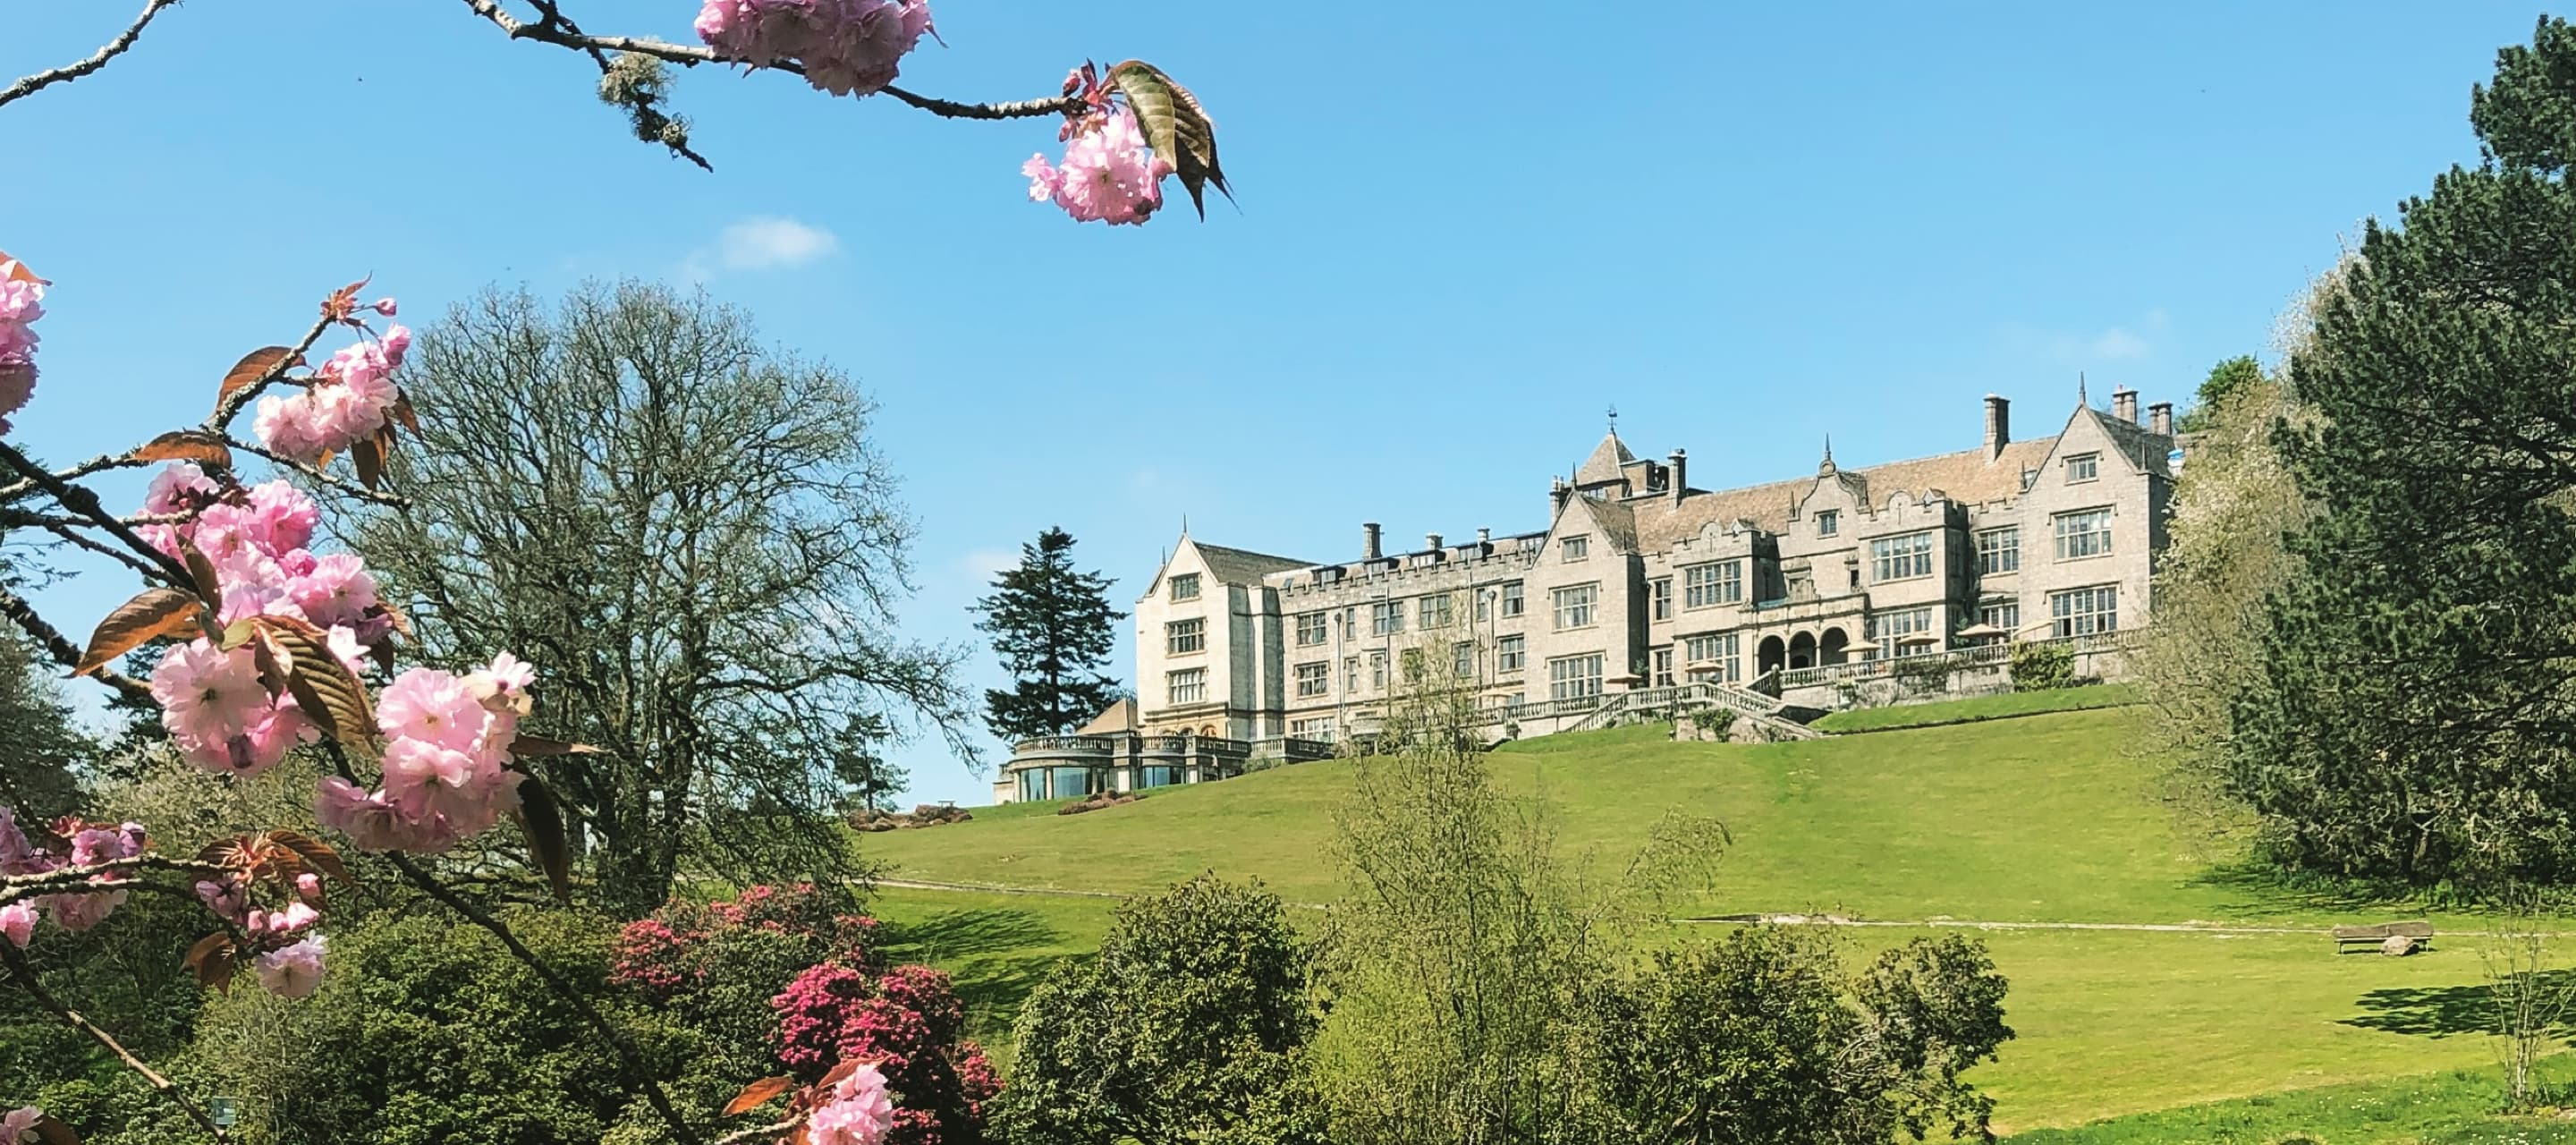 9cc27f08ac If you are looking for a luxurious Golf UK staycation in beautiful  surroundings look no further than Bovey Castle. Our golf course is open to  golf lovers of ...